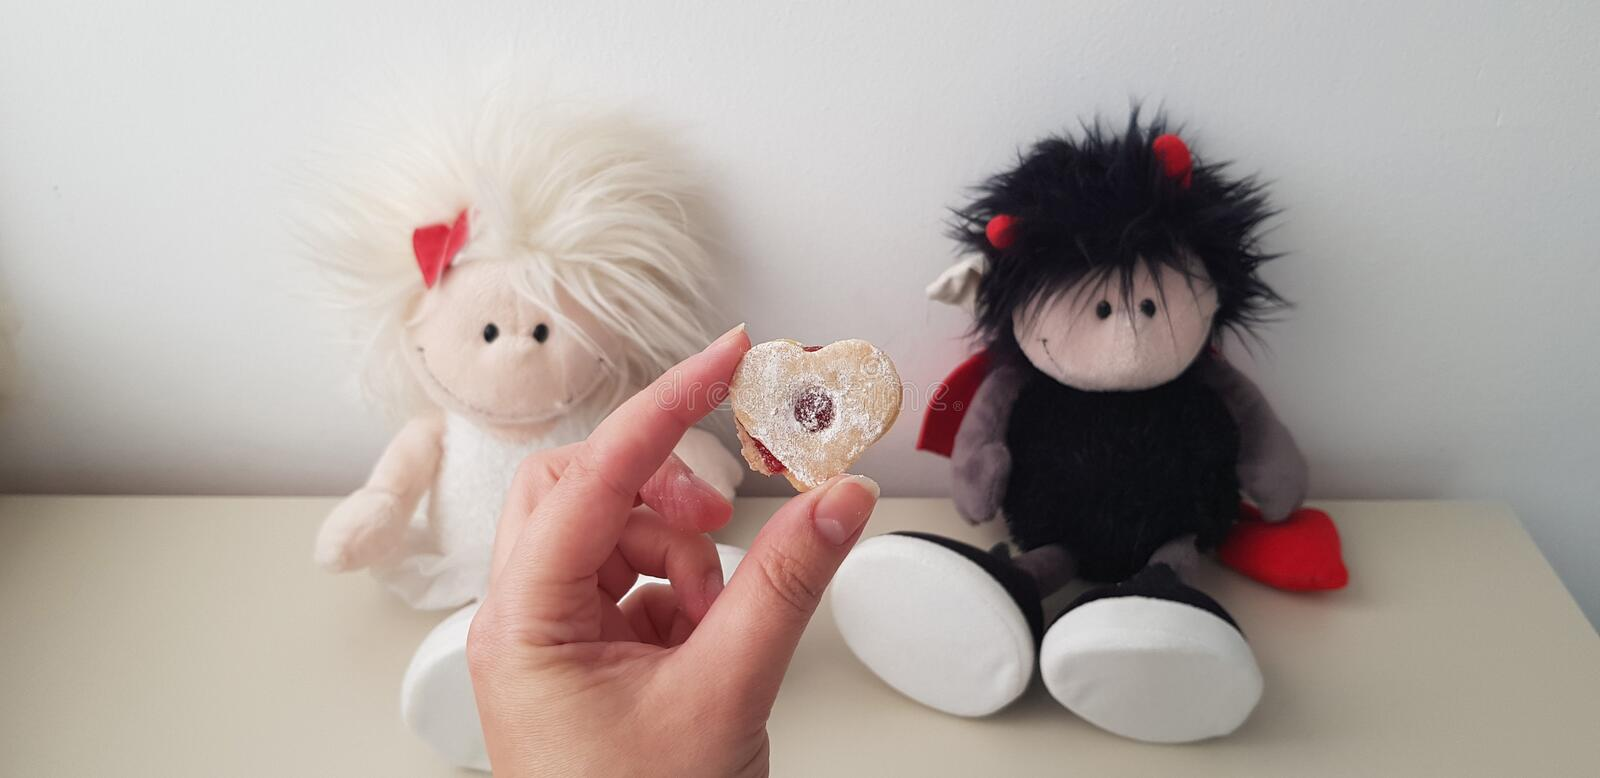 Cookie with red filling against twin angel and demon romantic toys stock photo